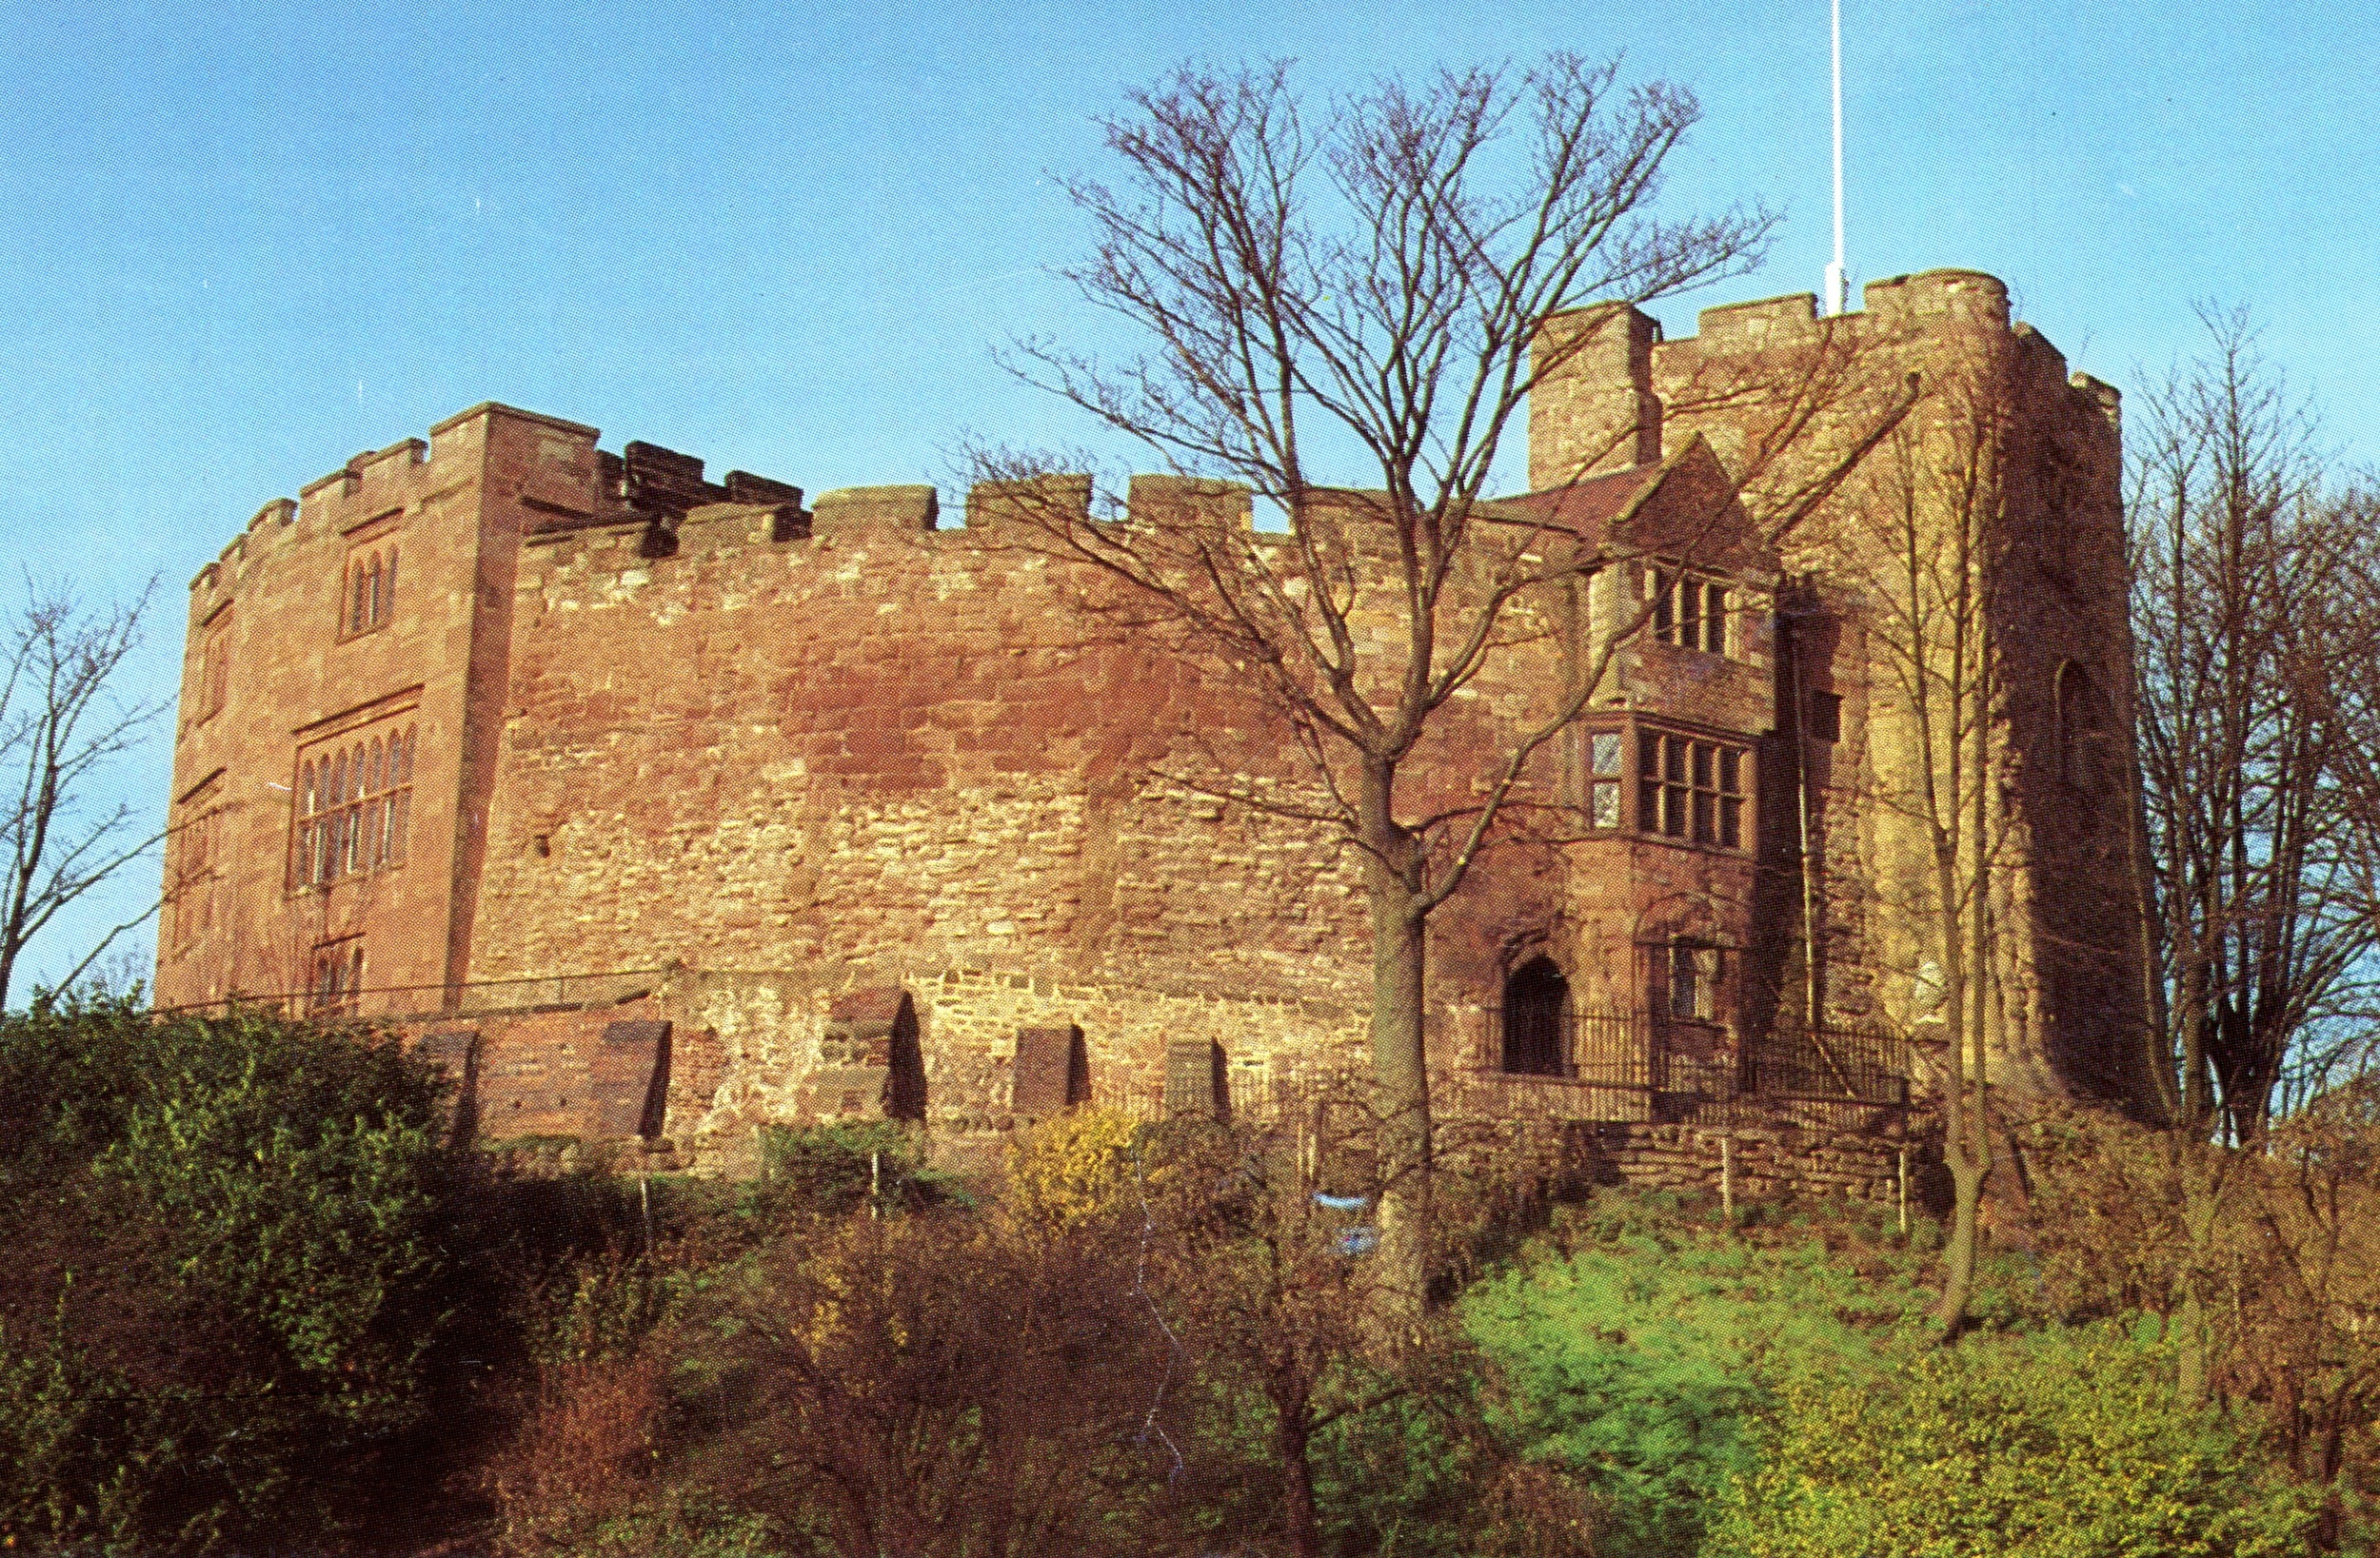 Tamworth Castle, England